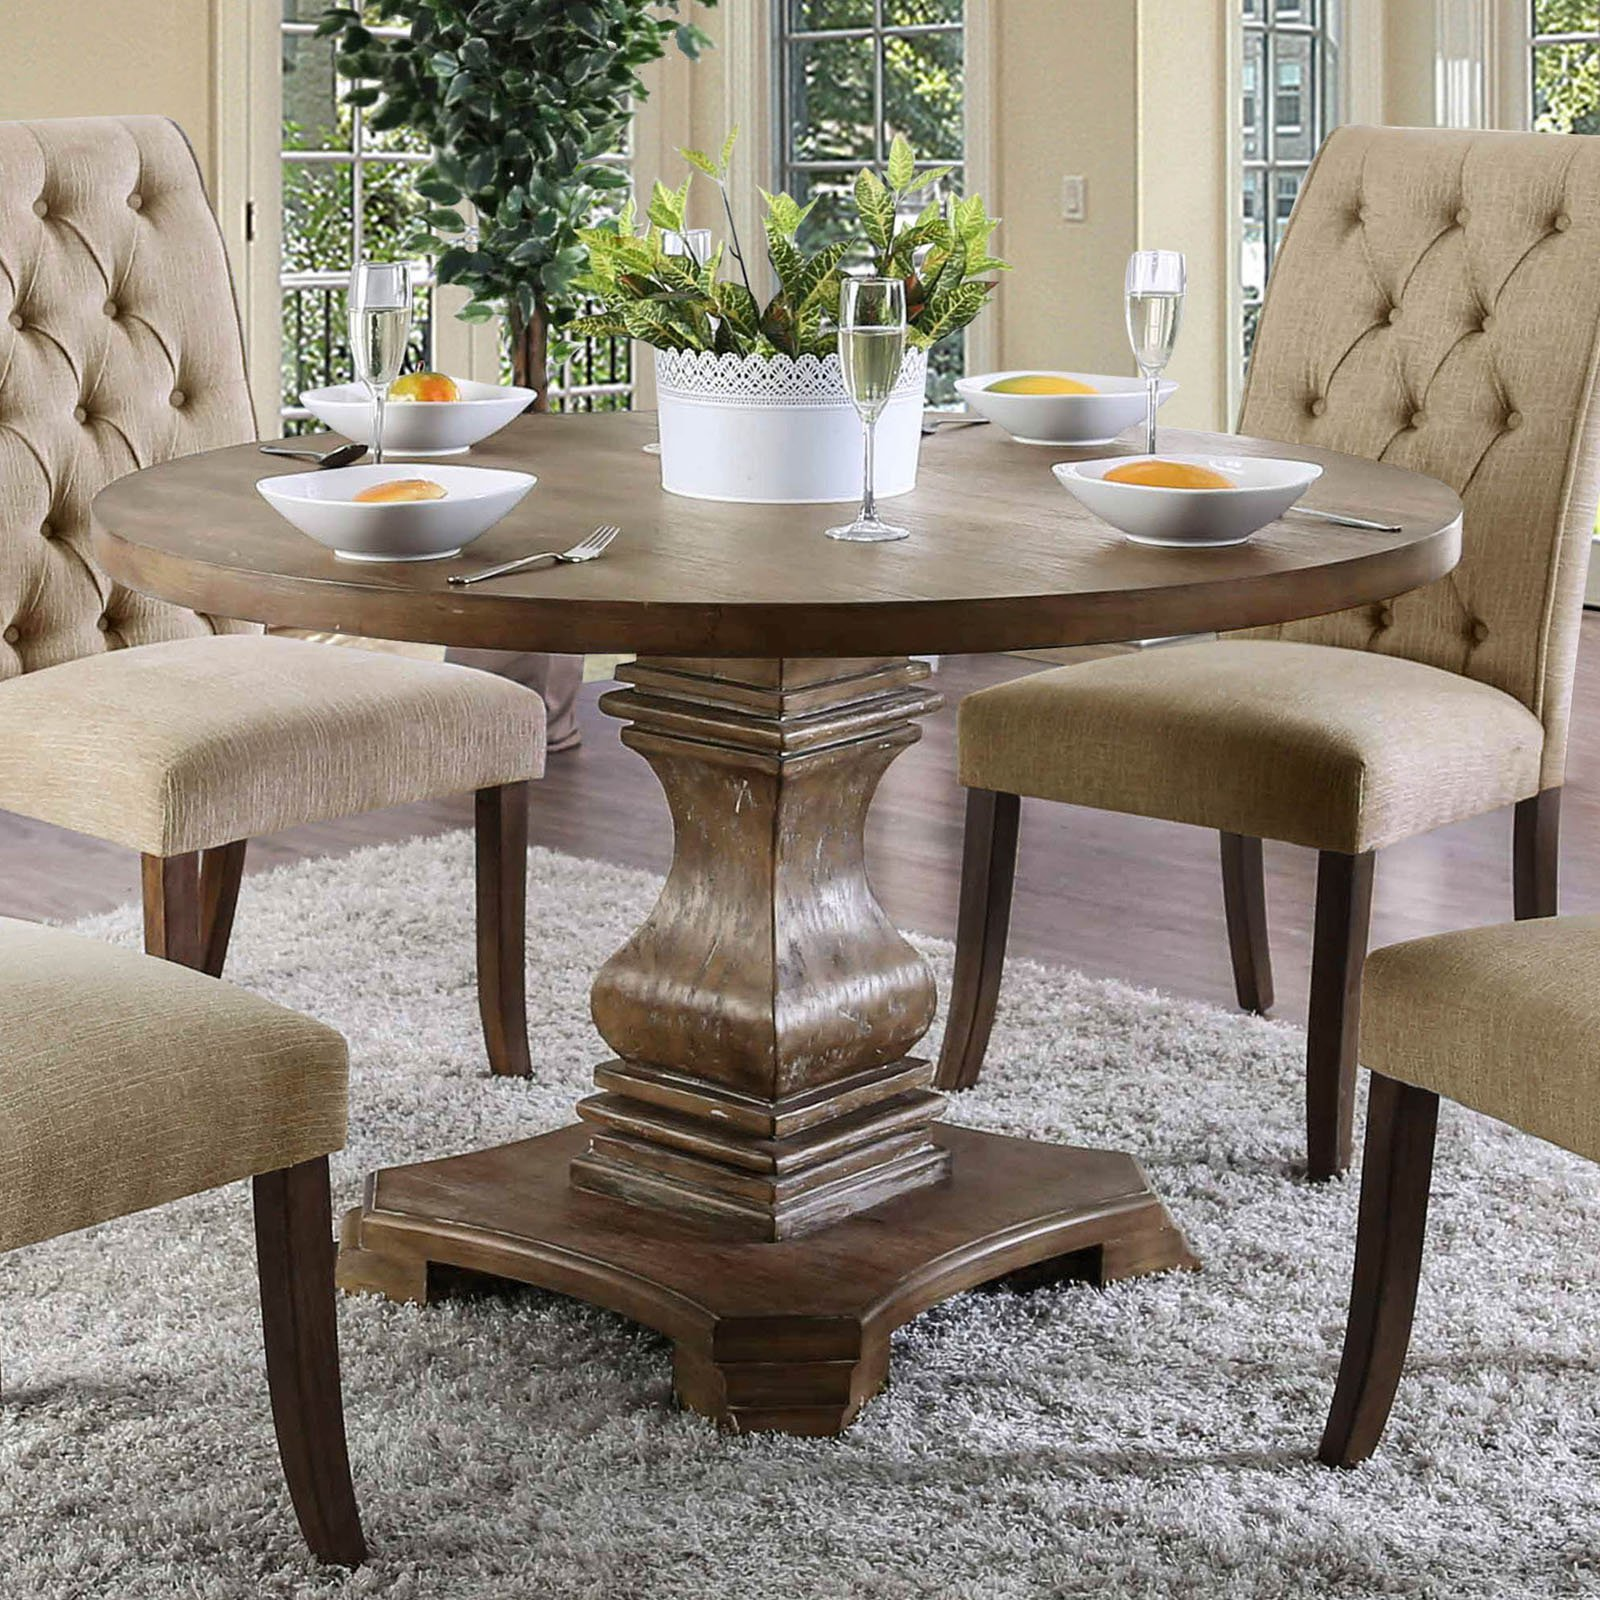 Furniture of America Anton Round Dining Table